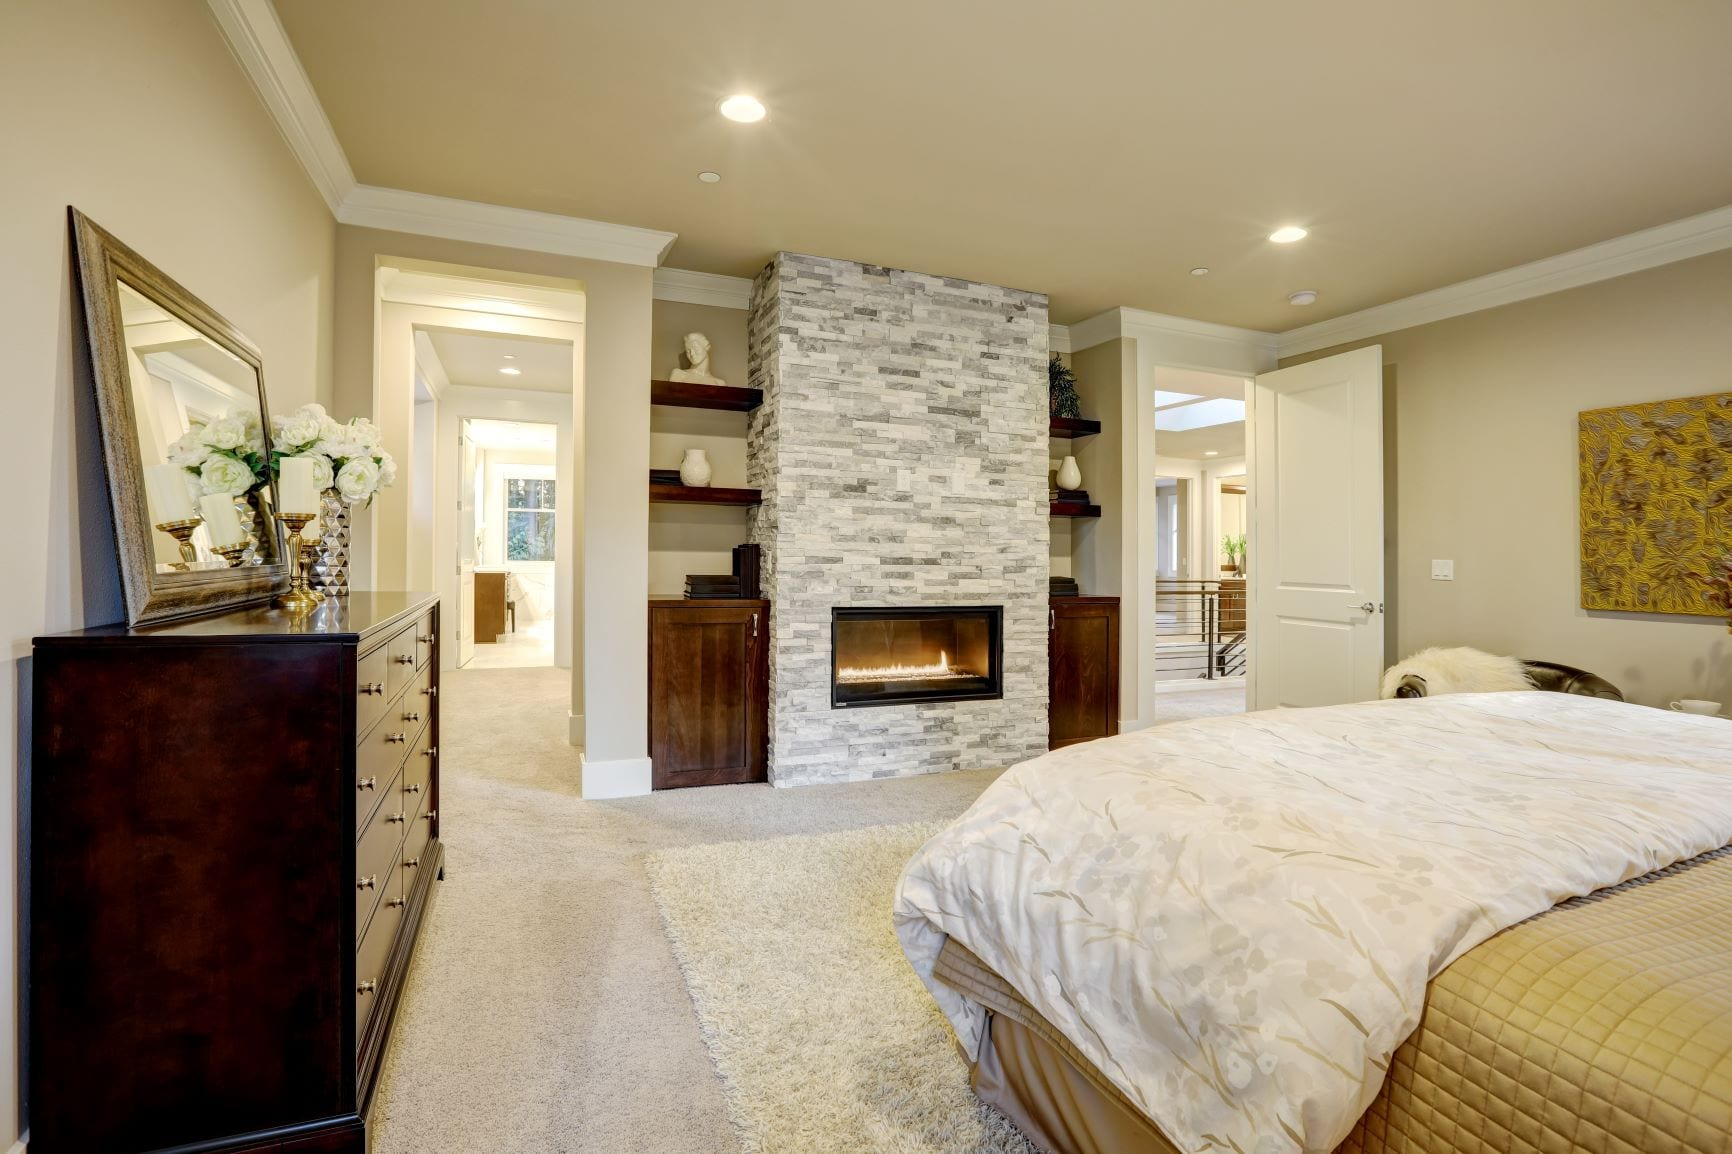 Where to Place a Gas Fireplace